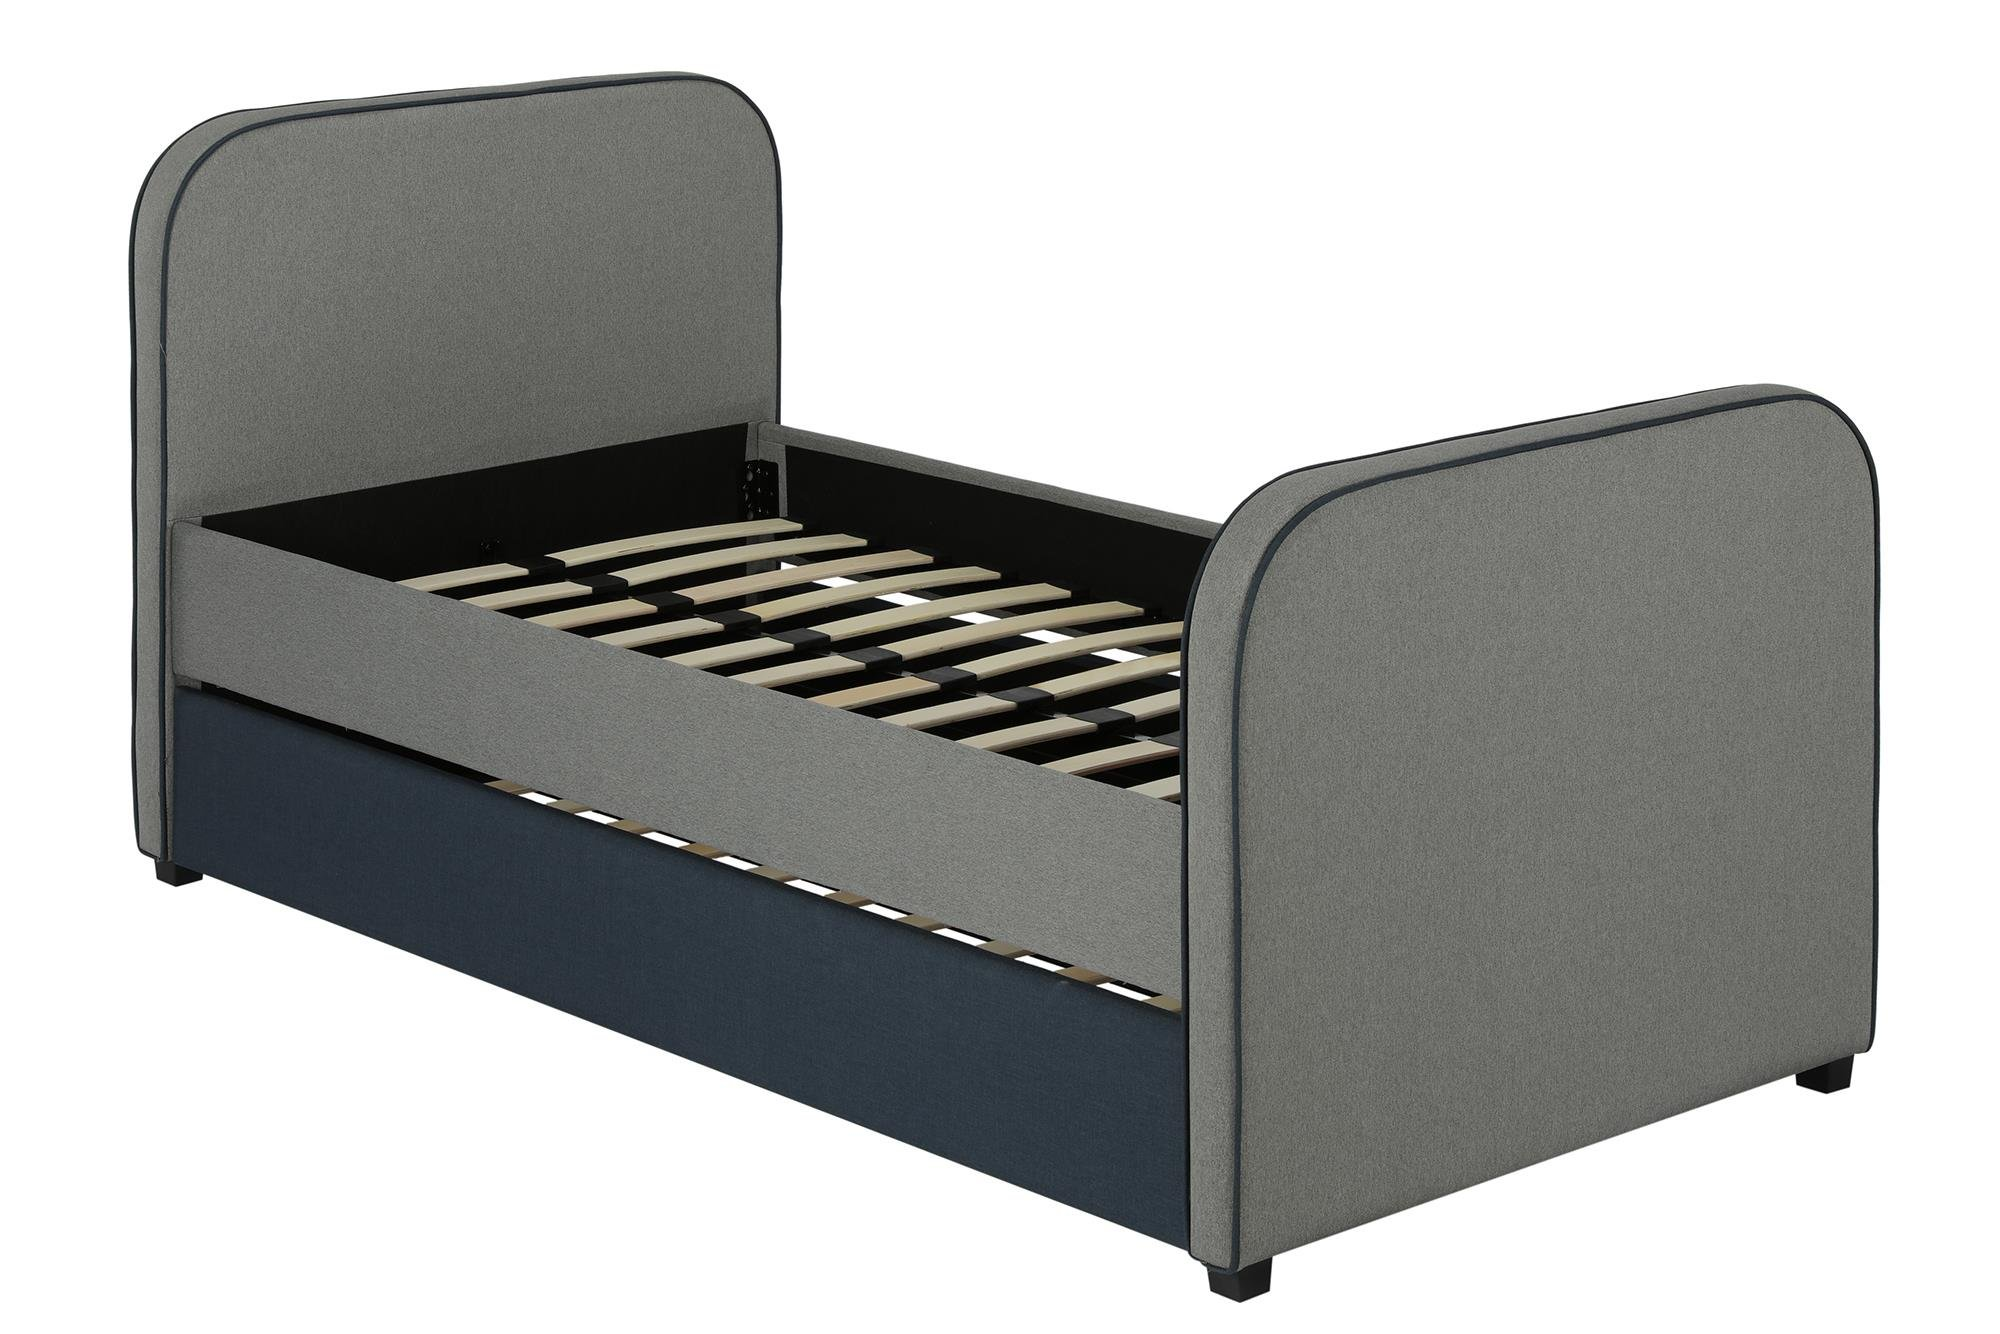 DHP Jesse Twin Kids Bed with Trundle in Gray Linen by DHP (Image #1)